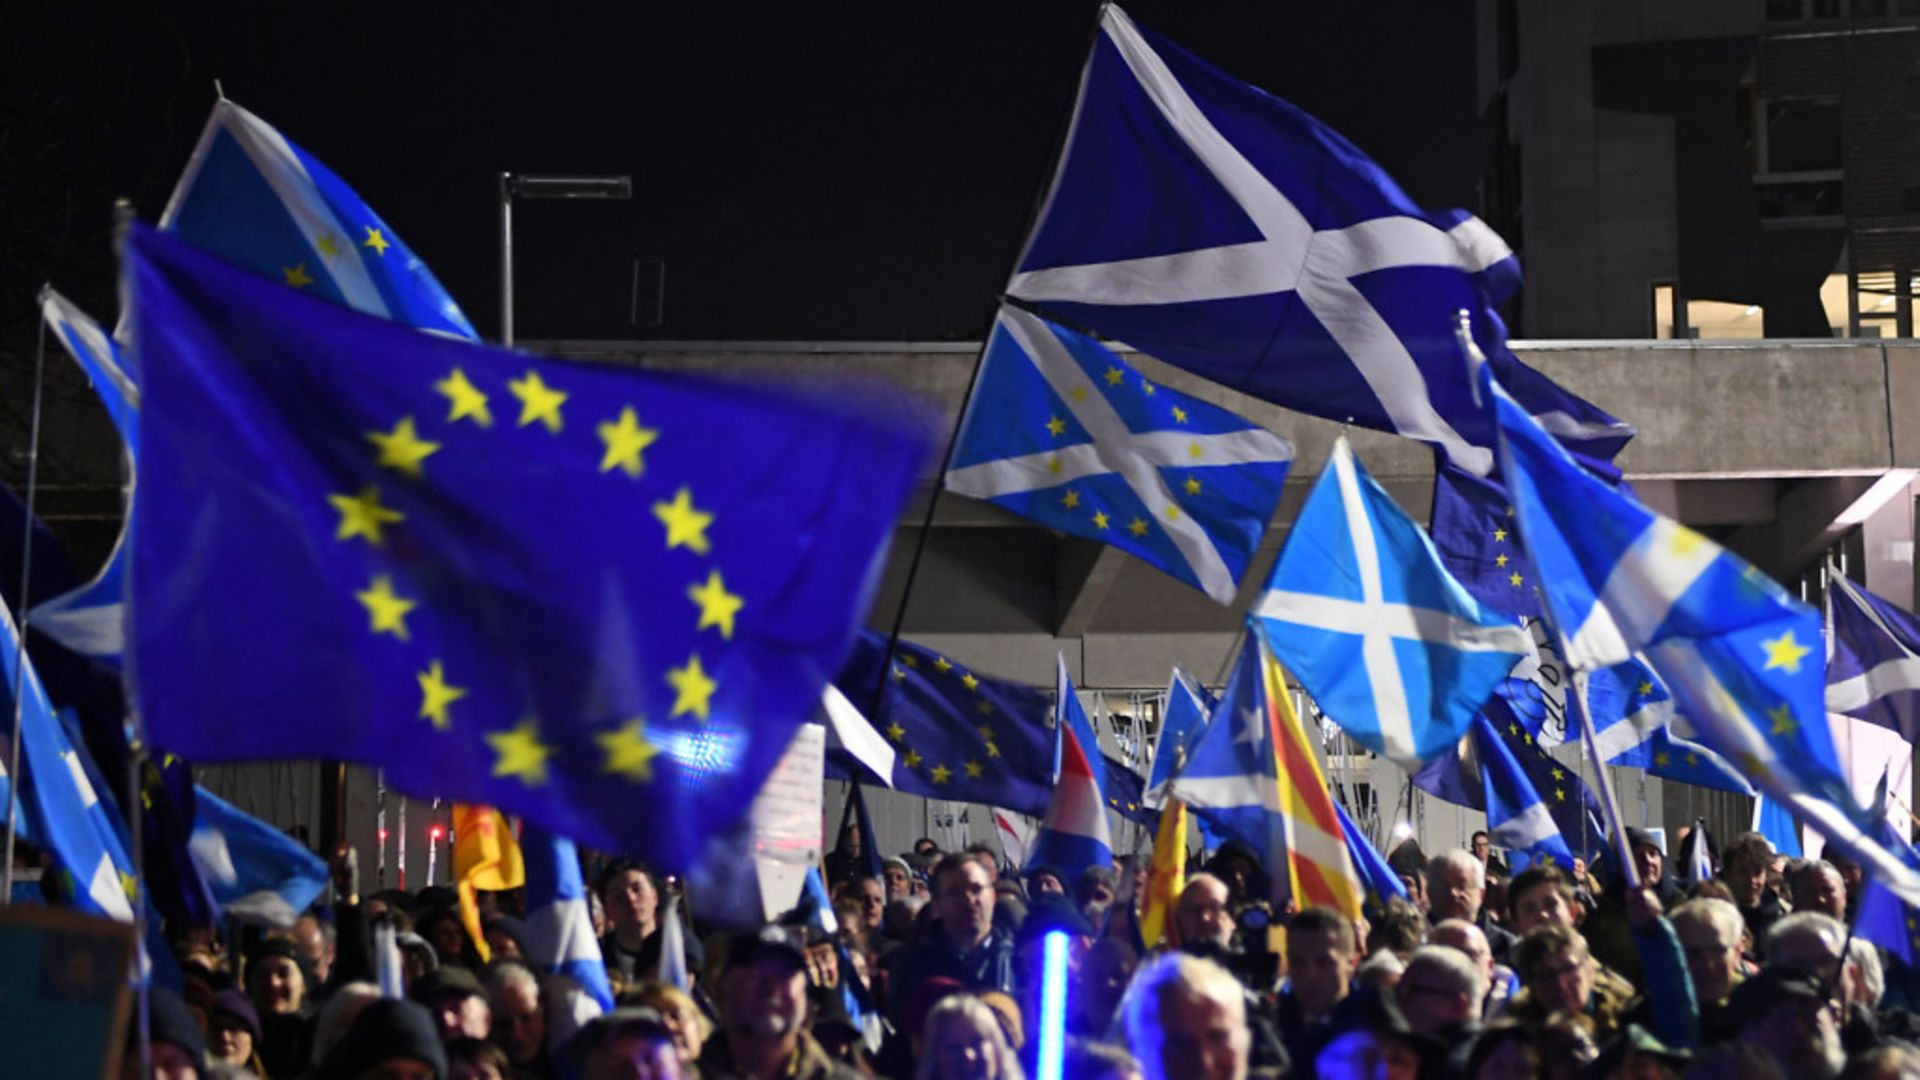 Saltires and European Union flags flutter in the breeze during a protest by anti-Brexit activists in Edinburgh, Scotland - Credit: AFP via Getty Images